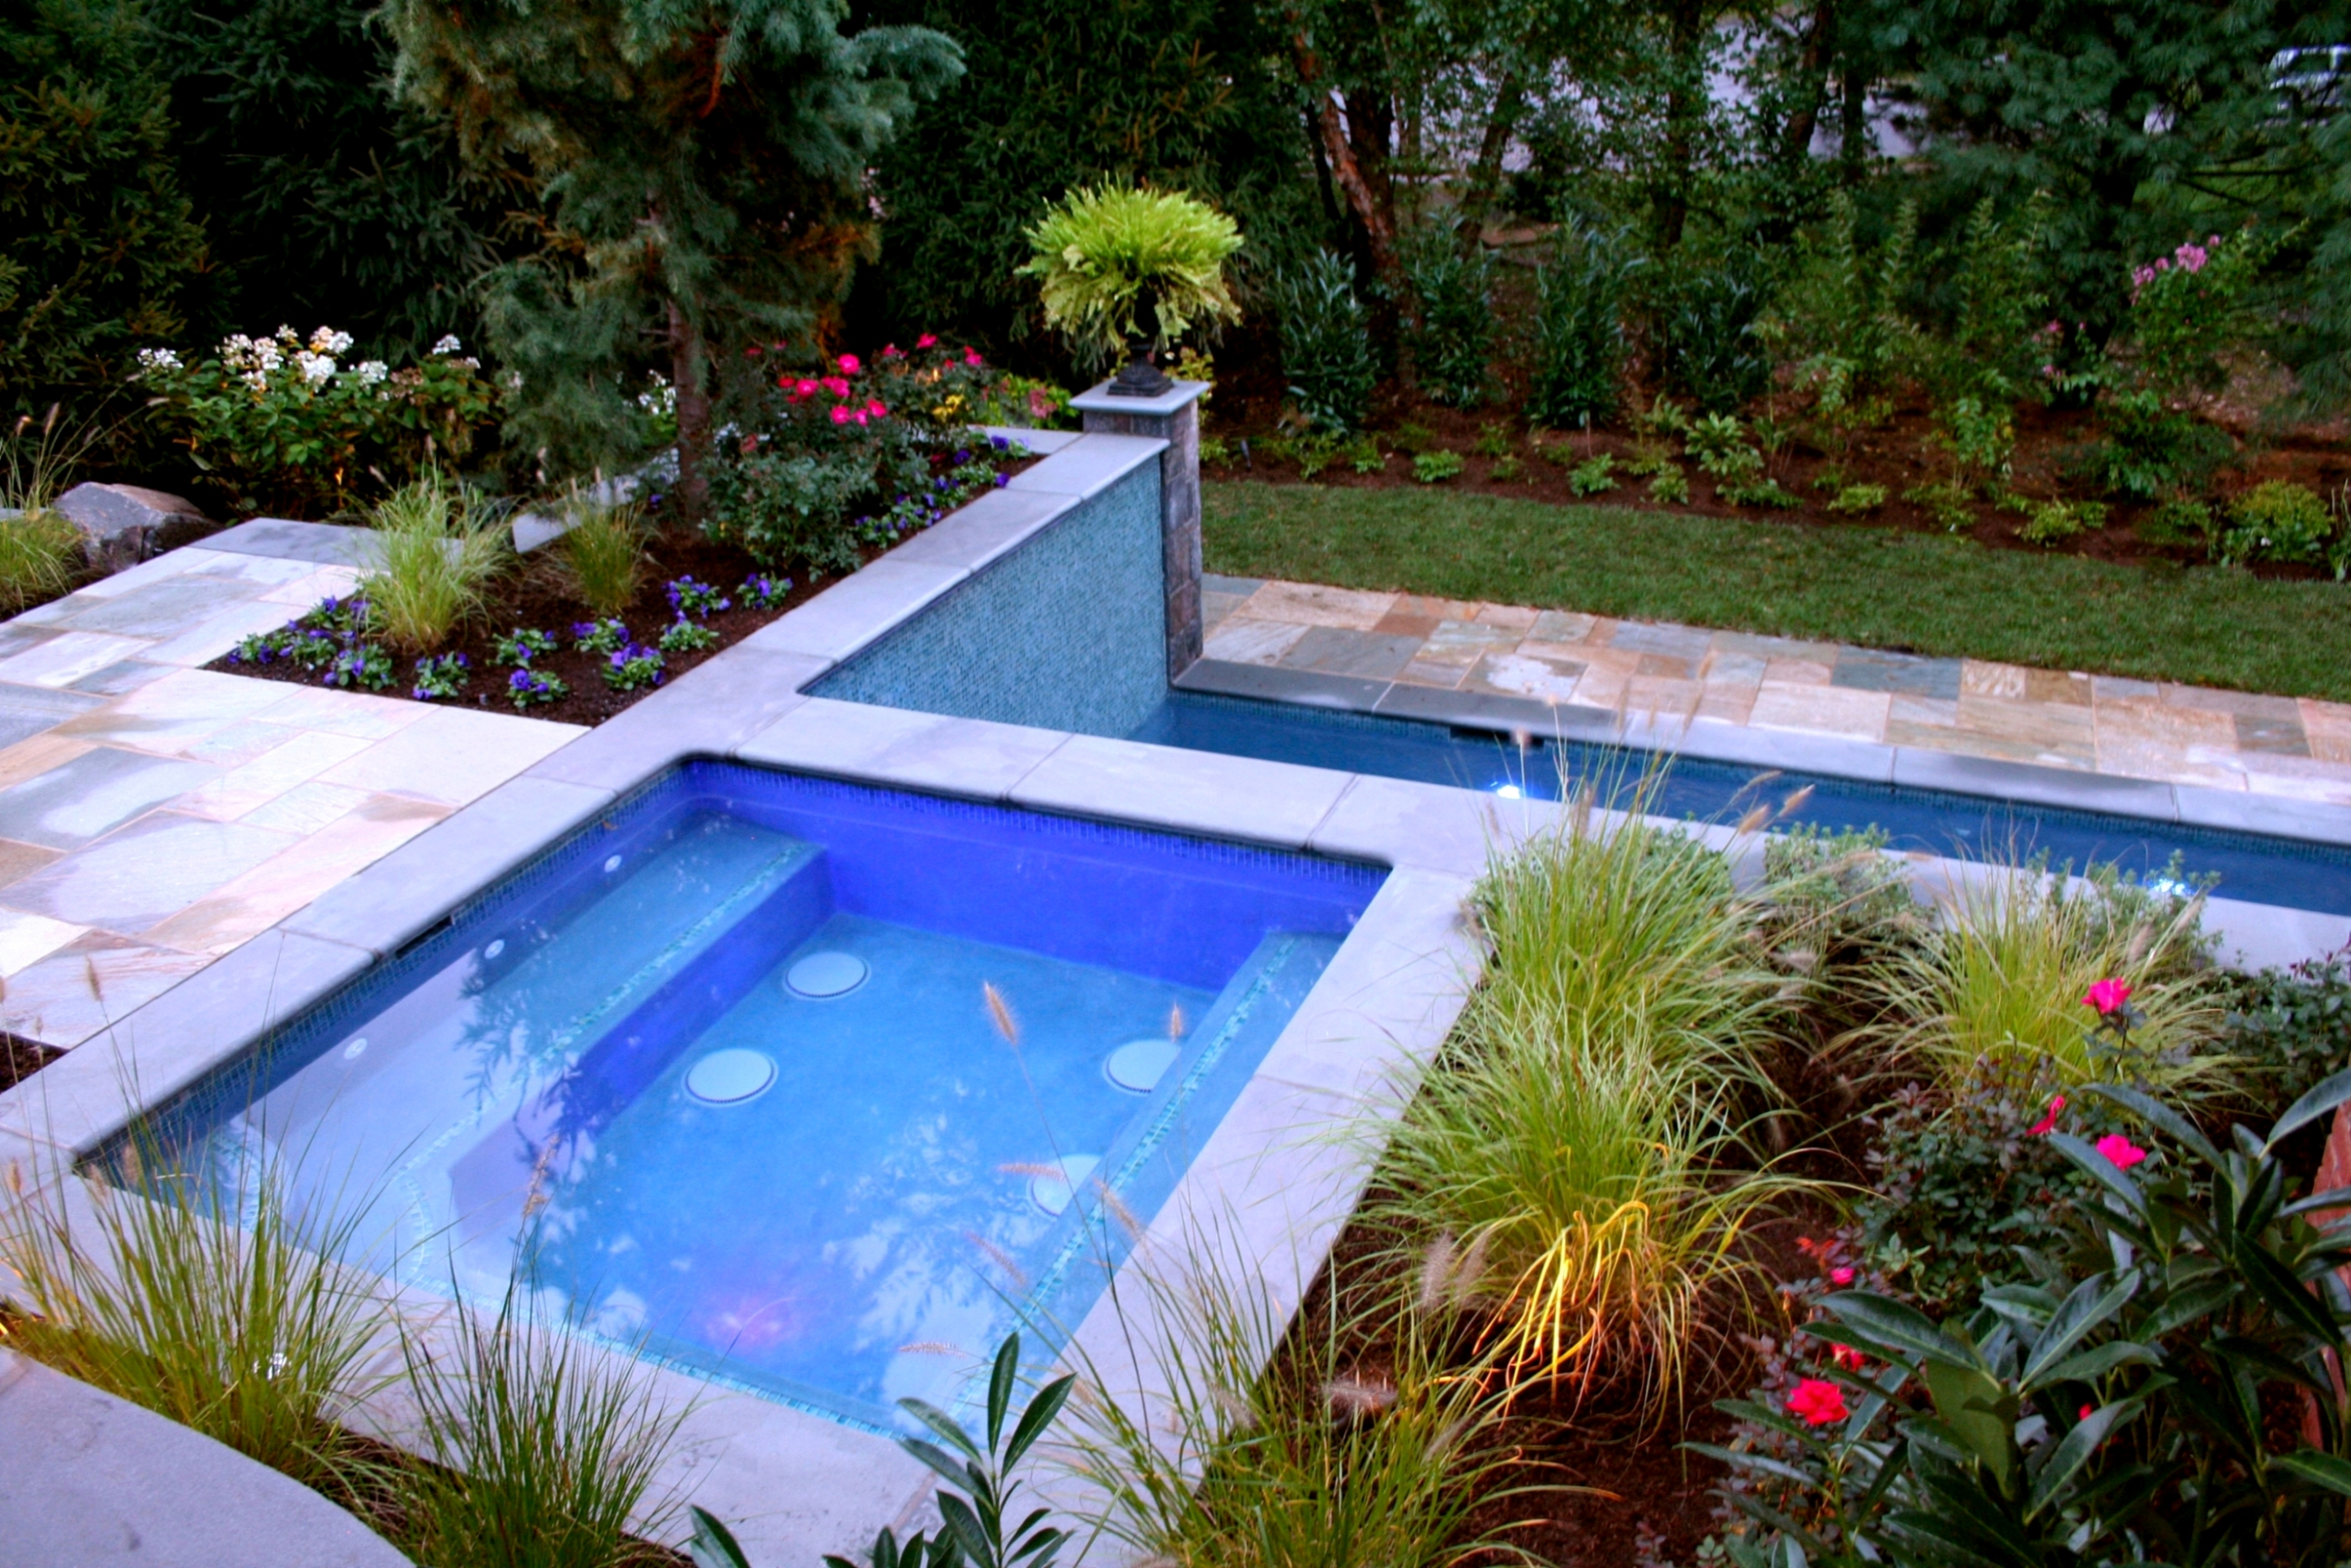 New jersey landscape architects earn five awards for pools for Landscape gardeners poole